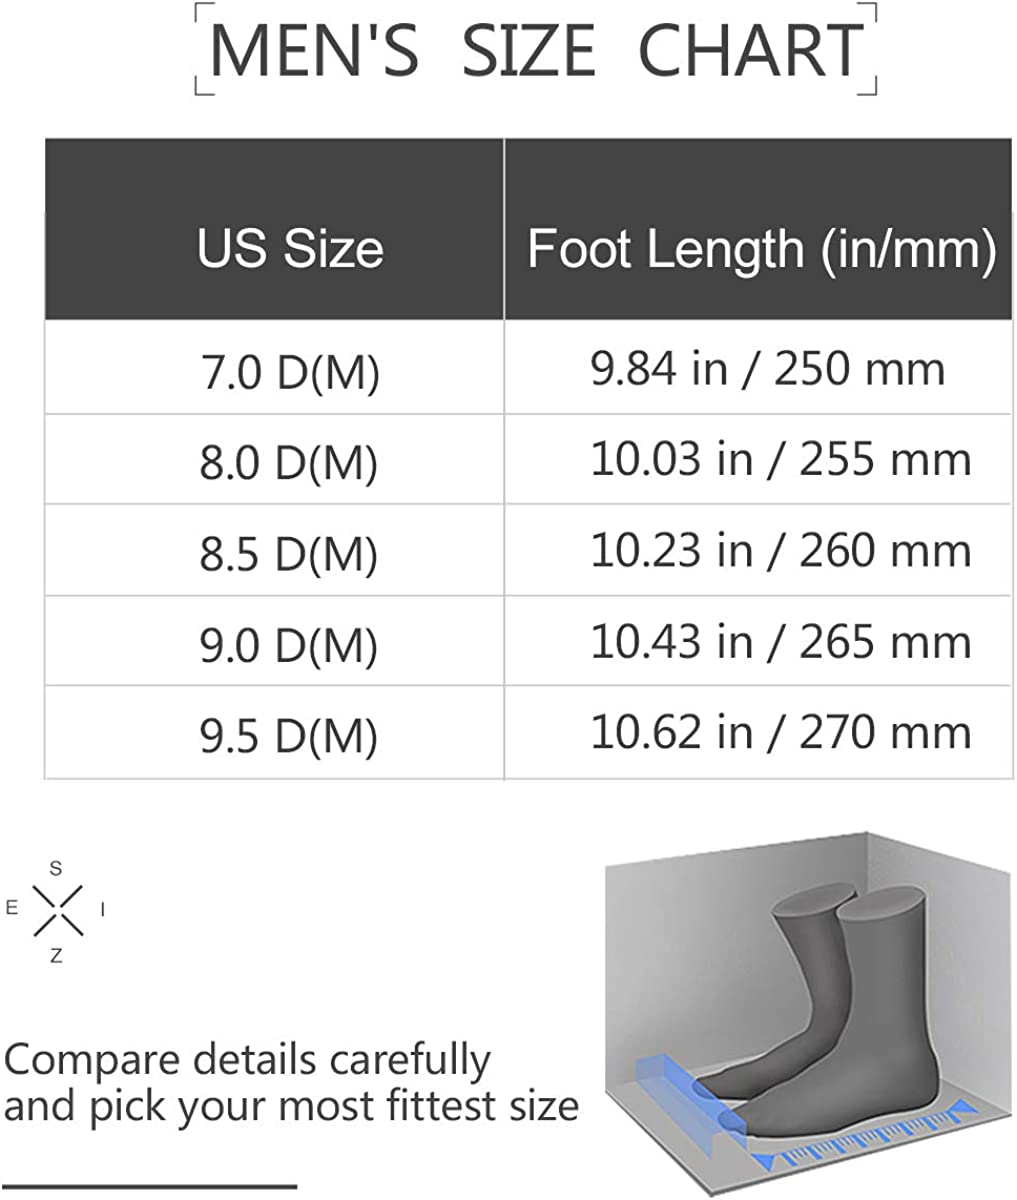 CAMEL CROWN Mens Slip On Sneakers Leather Loafers Comfort House Slippers Casual Walking Shoes for Men Outdoor Sports Fitness